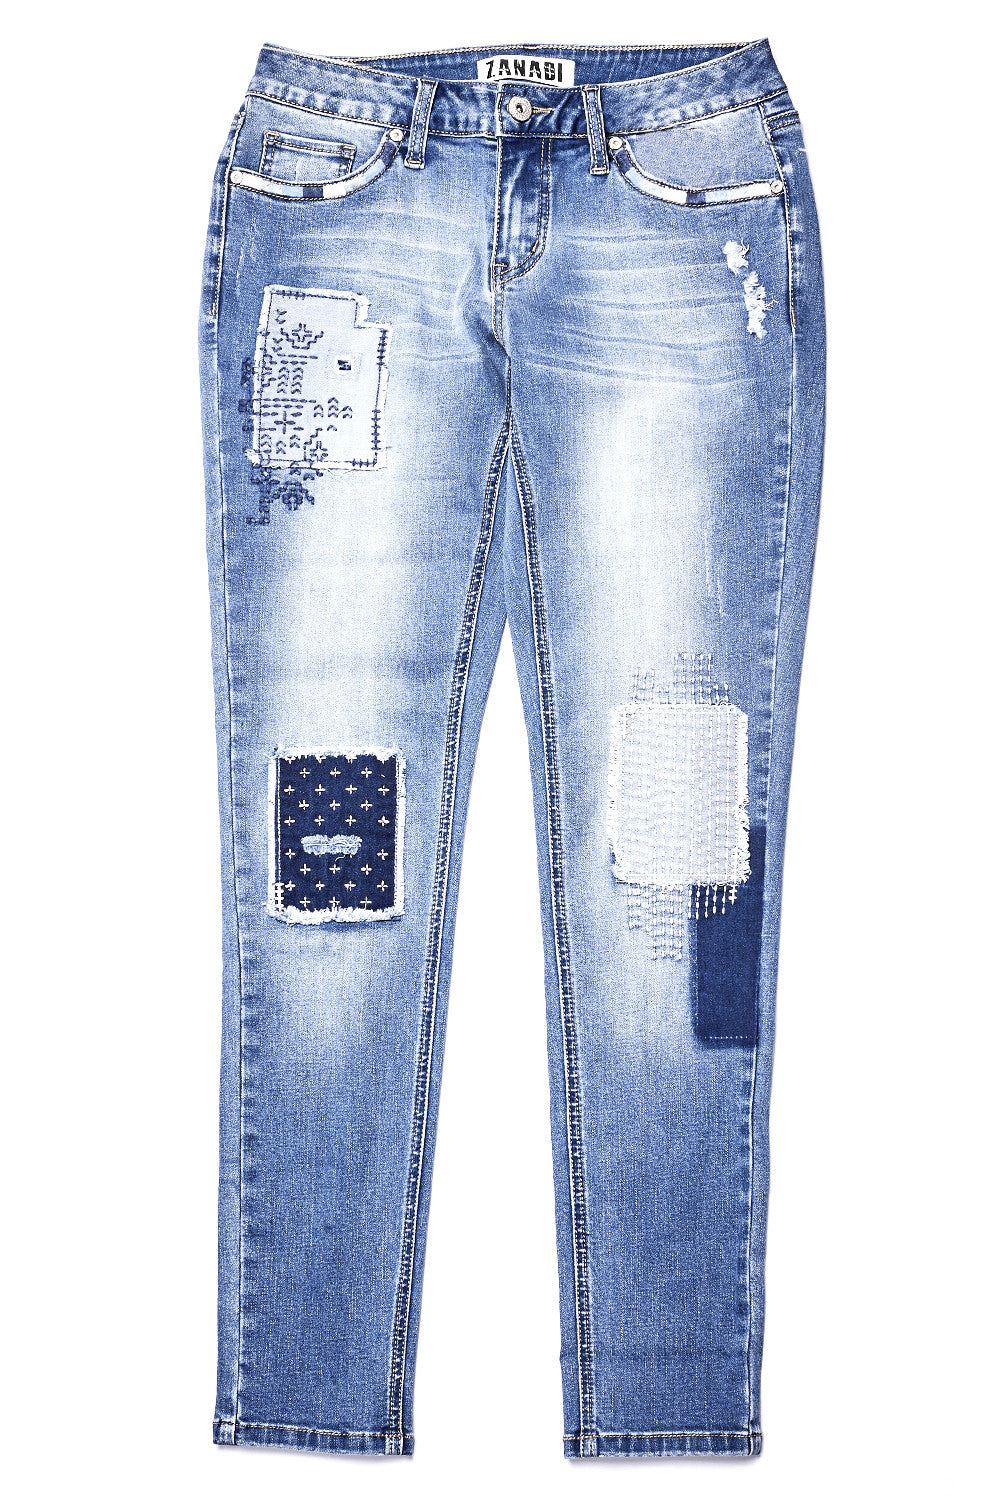 McLin Wash Patched & Repaired Jean